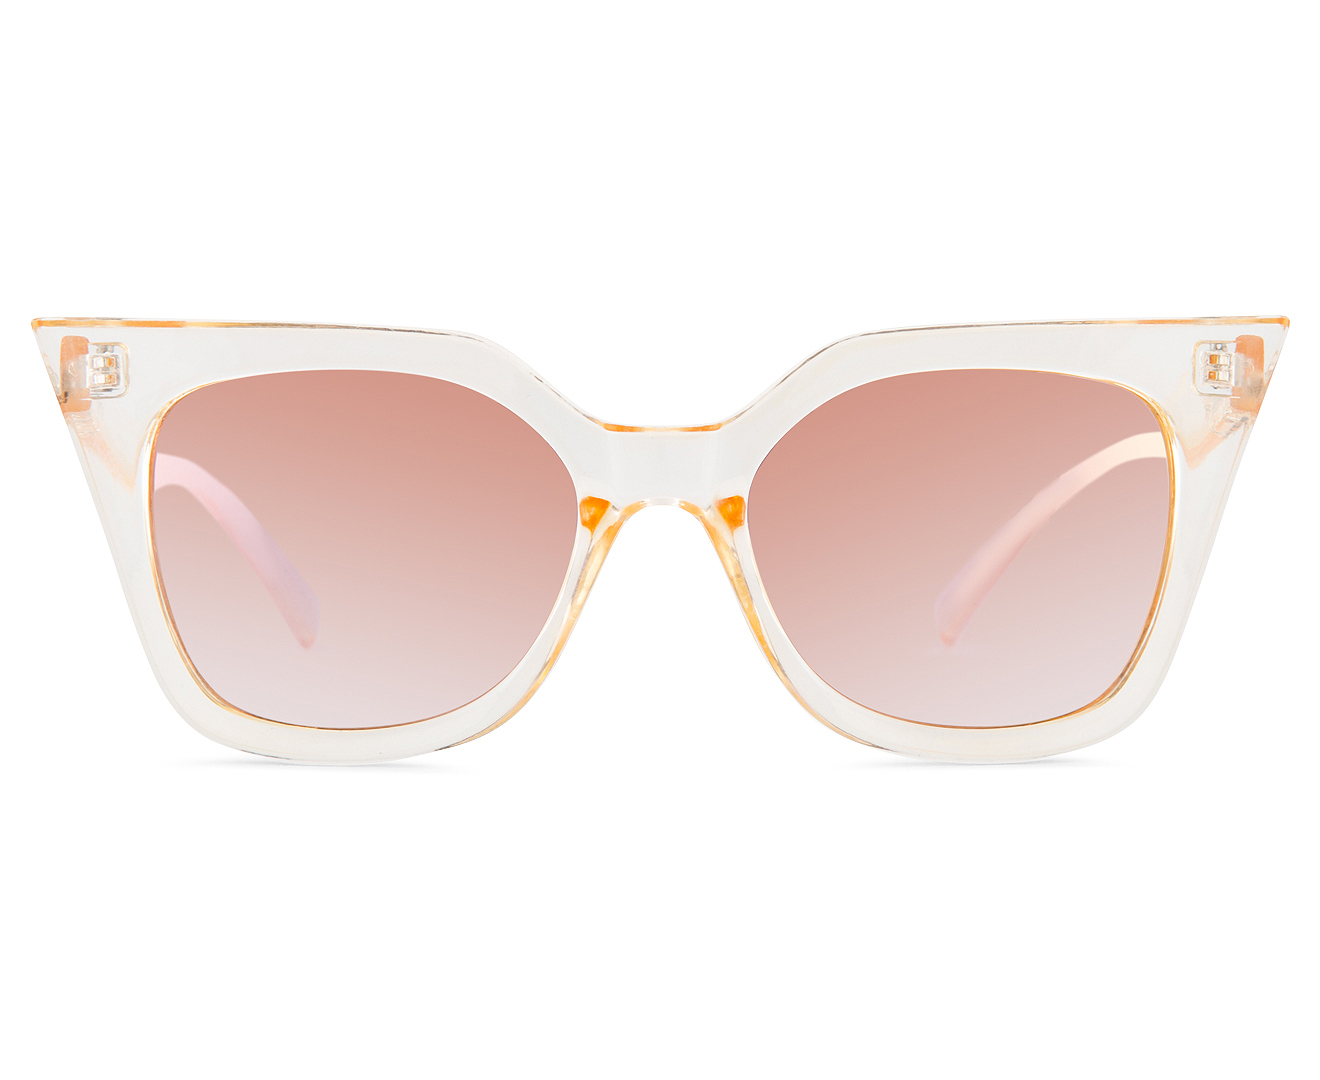 2d77d70e9f25a Quay Australia Women s Cat Eye Harper Sunglasses - Gold Gold